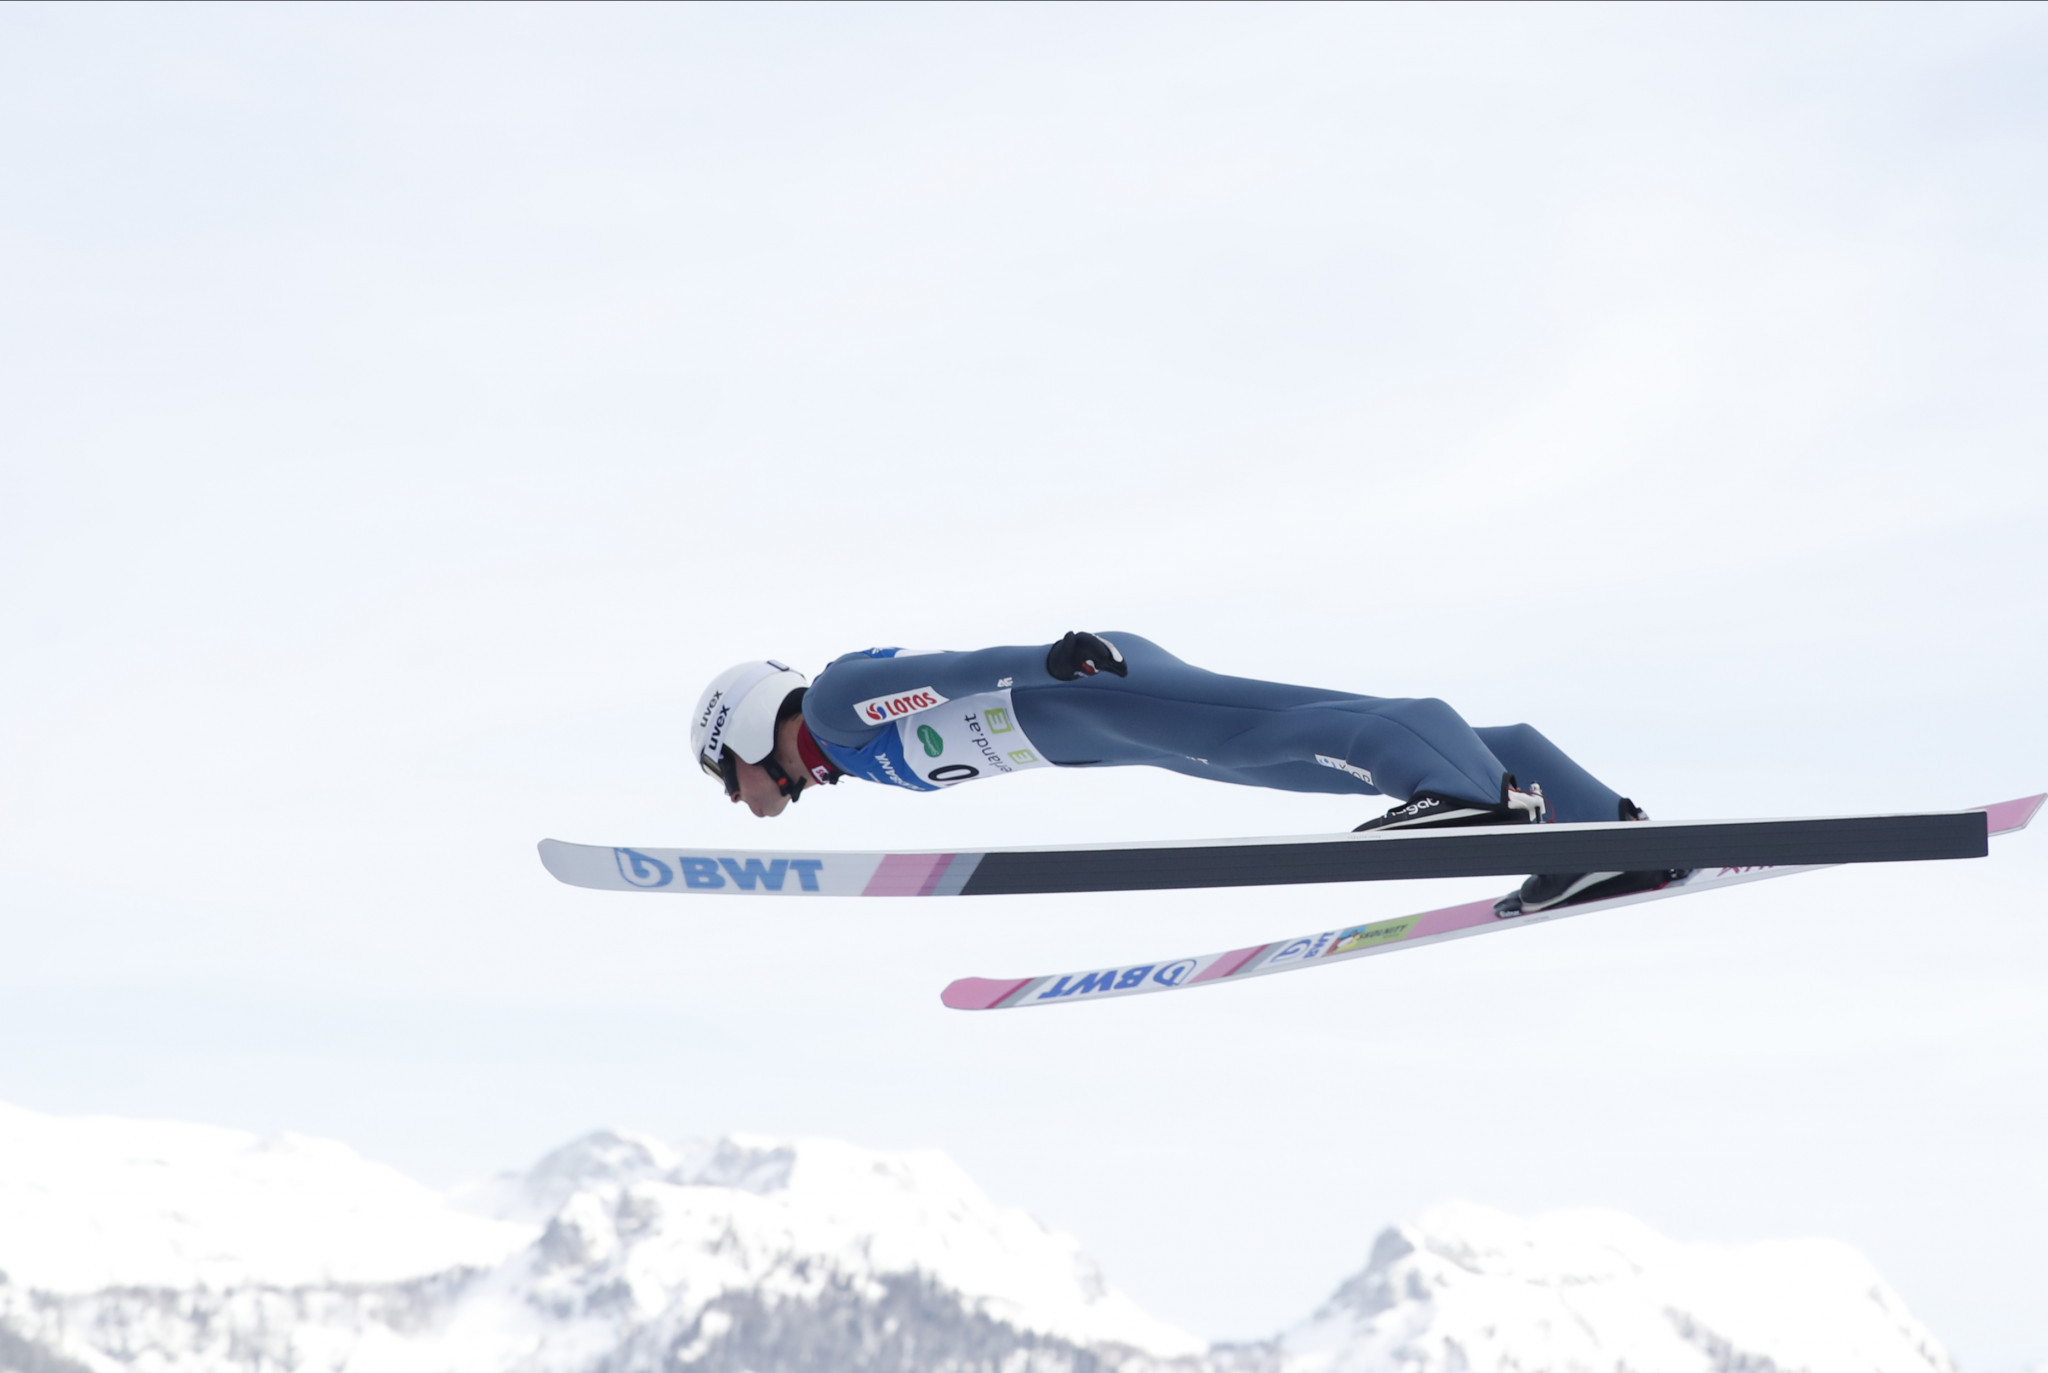 Żyła wins first Ski Jumping World Cup event of the year ahead of favourites